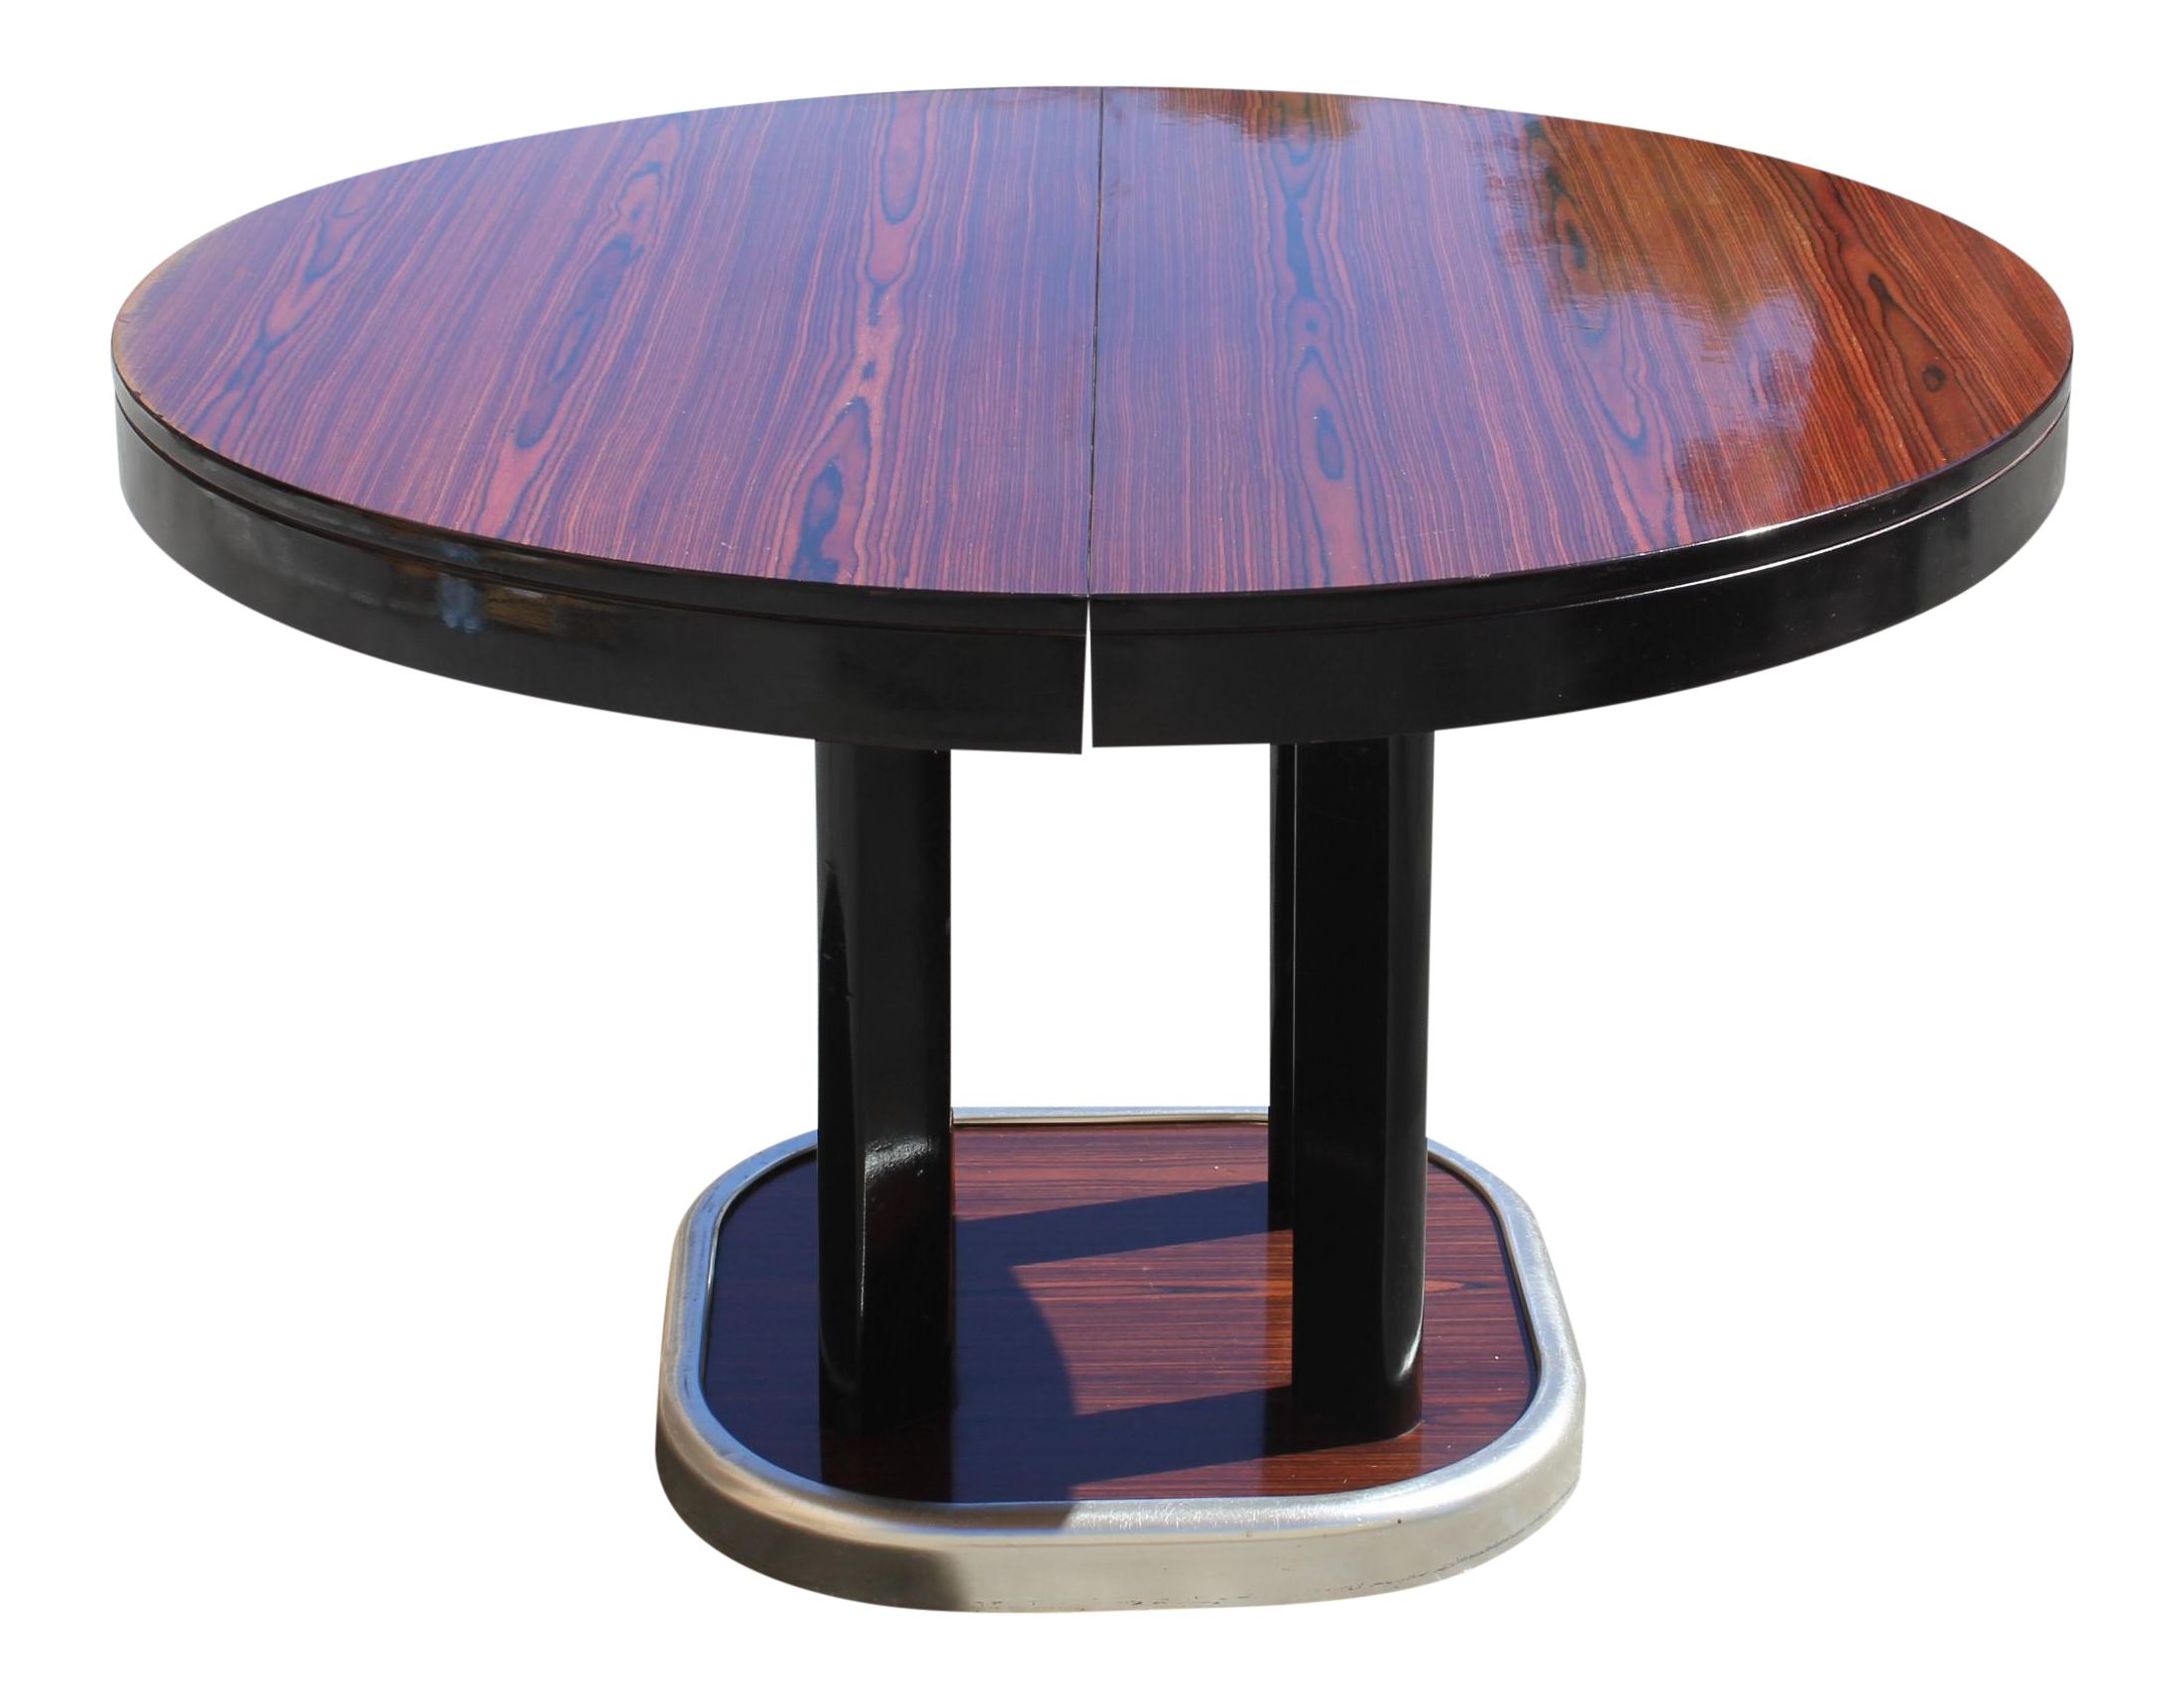 French Art Deco Macassar Ebony Round Dining Table With Built In Extension Leaf Chairish